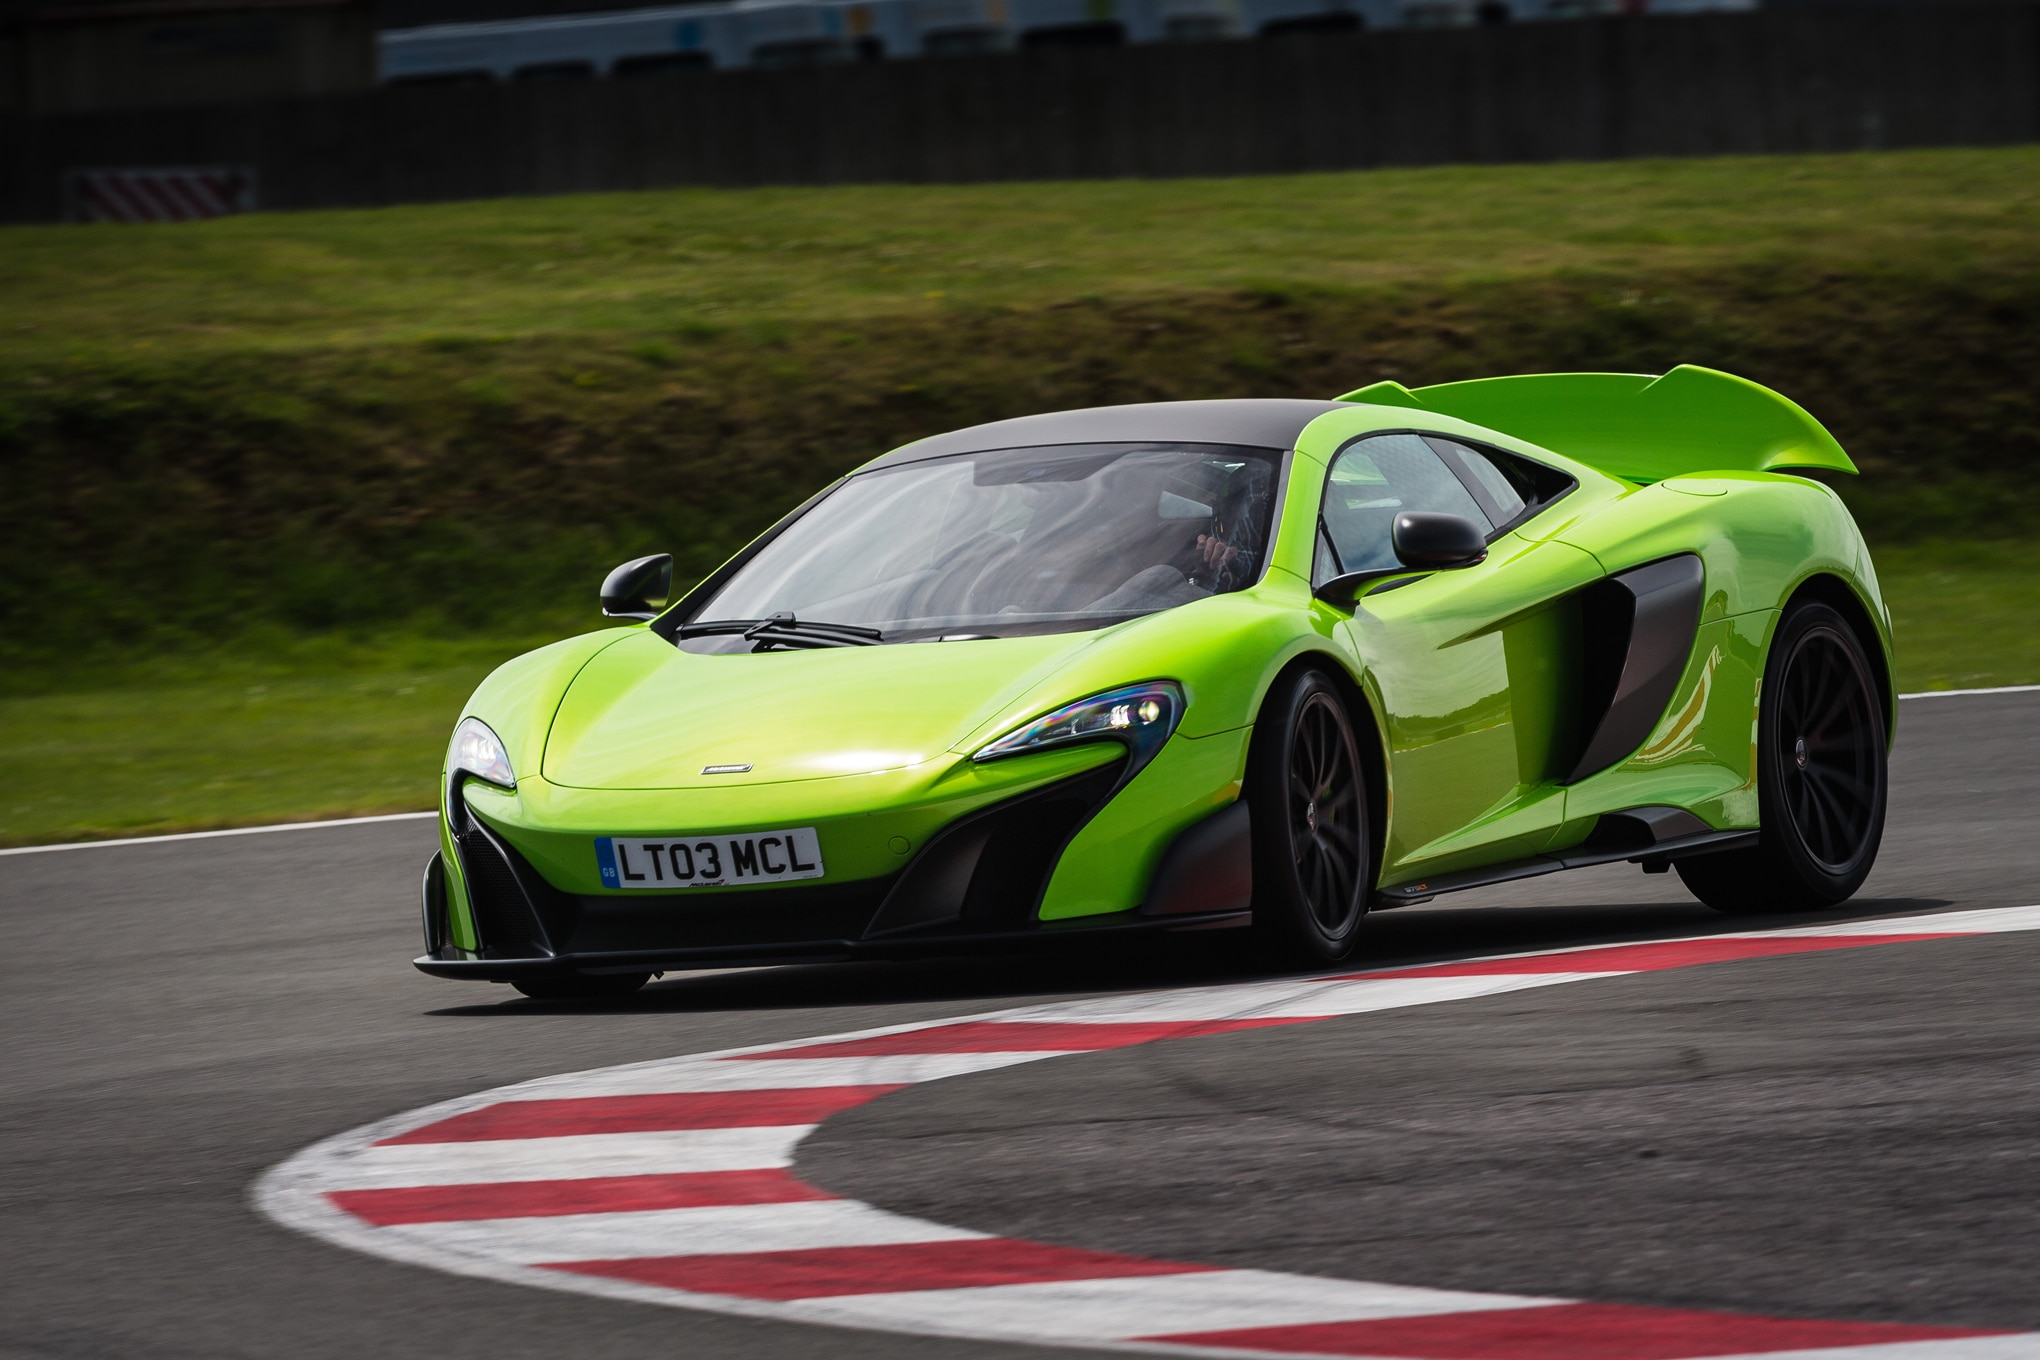 http://st.automobilemag.com/uploads/sites/11/2015/07/2016-Mclaren-675LT-front-three-quarter-in-motion-13.jpg